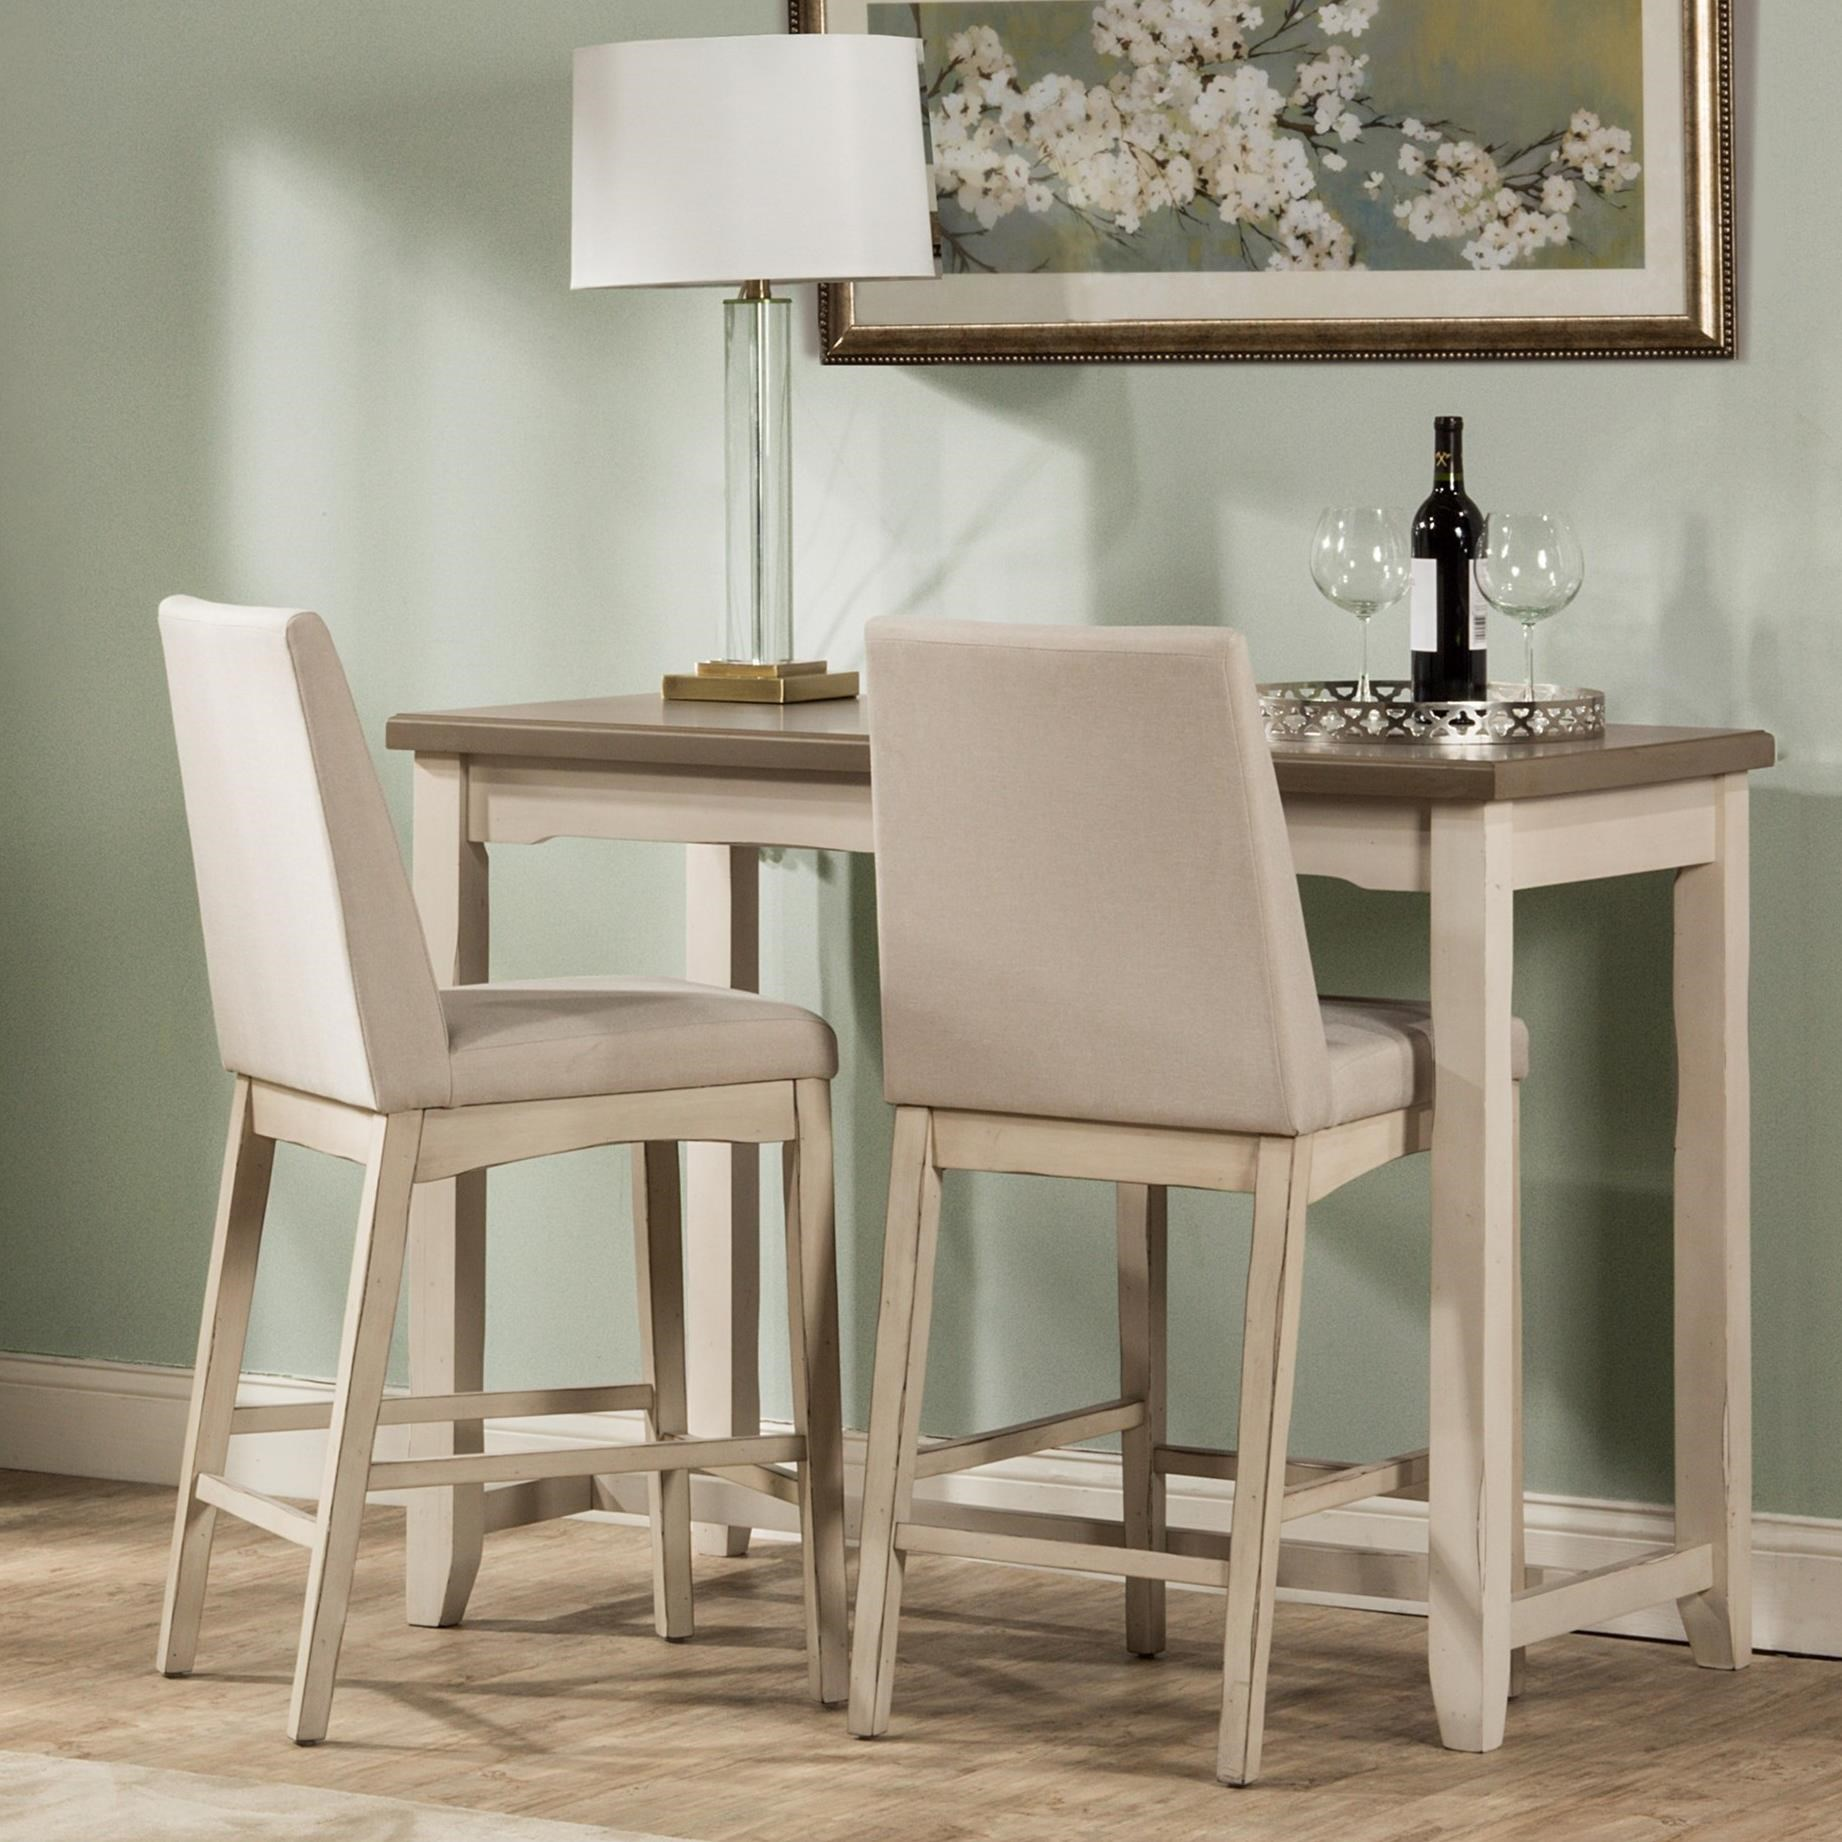 Hillsdale Clarion 3 Piece Counter Height Dining Set With Side Table And Parson Chairs Novello Home Furnishings Pub Table And Stool Sets